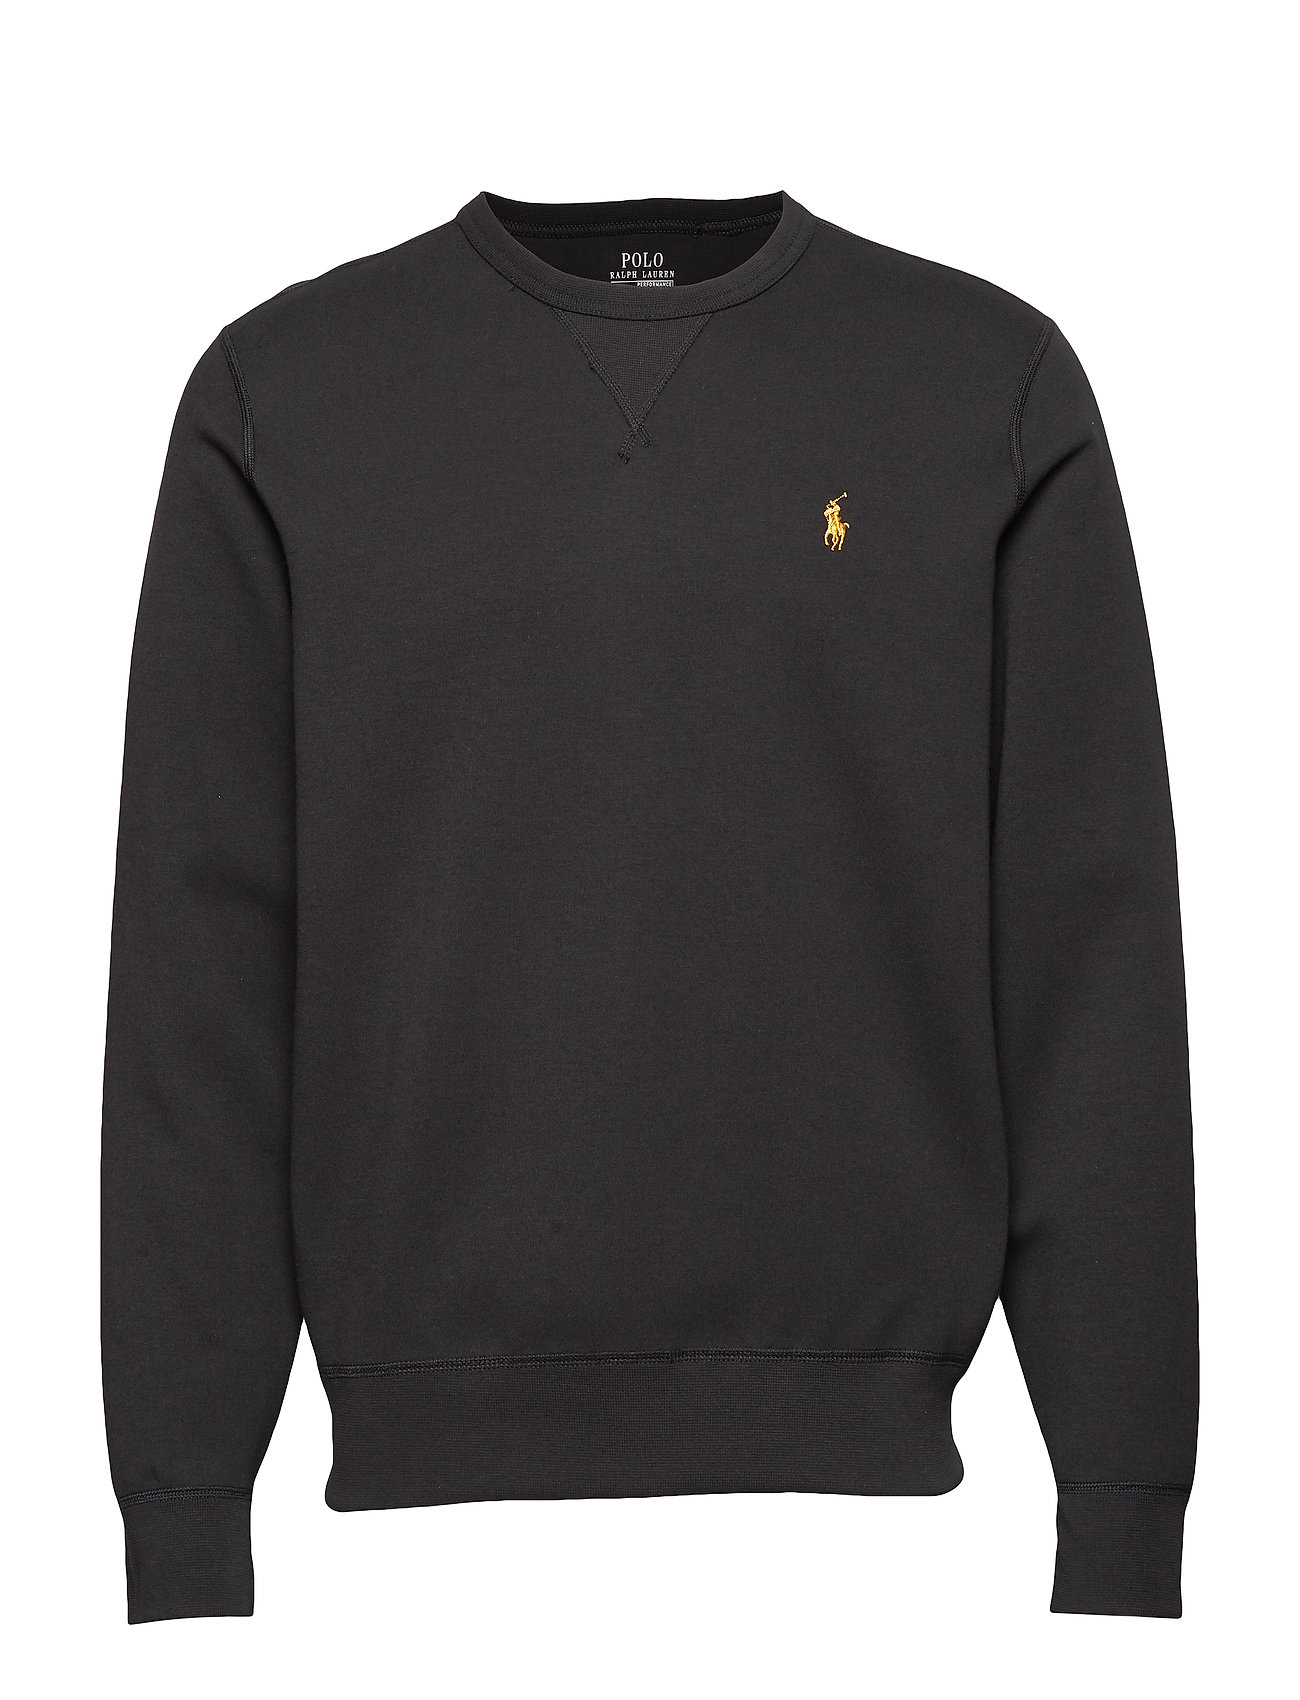 Double PPolo Black Ralph Lauren knit gold Sweatshirtpolo hdxtsQrC